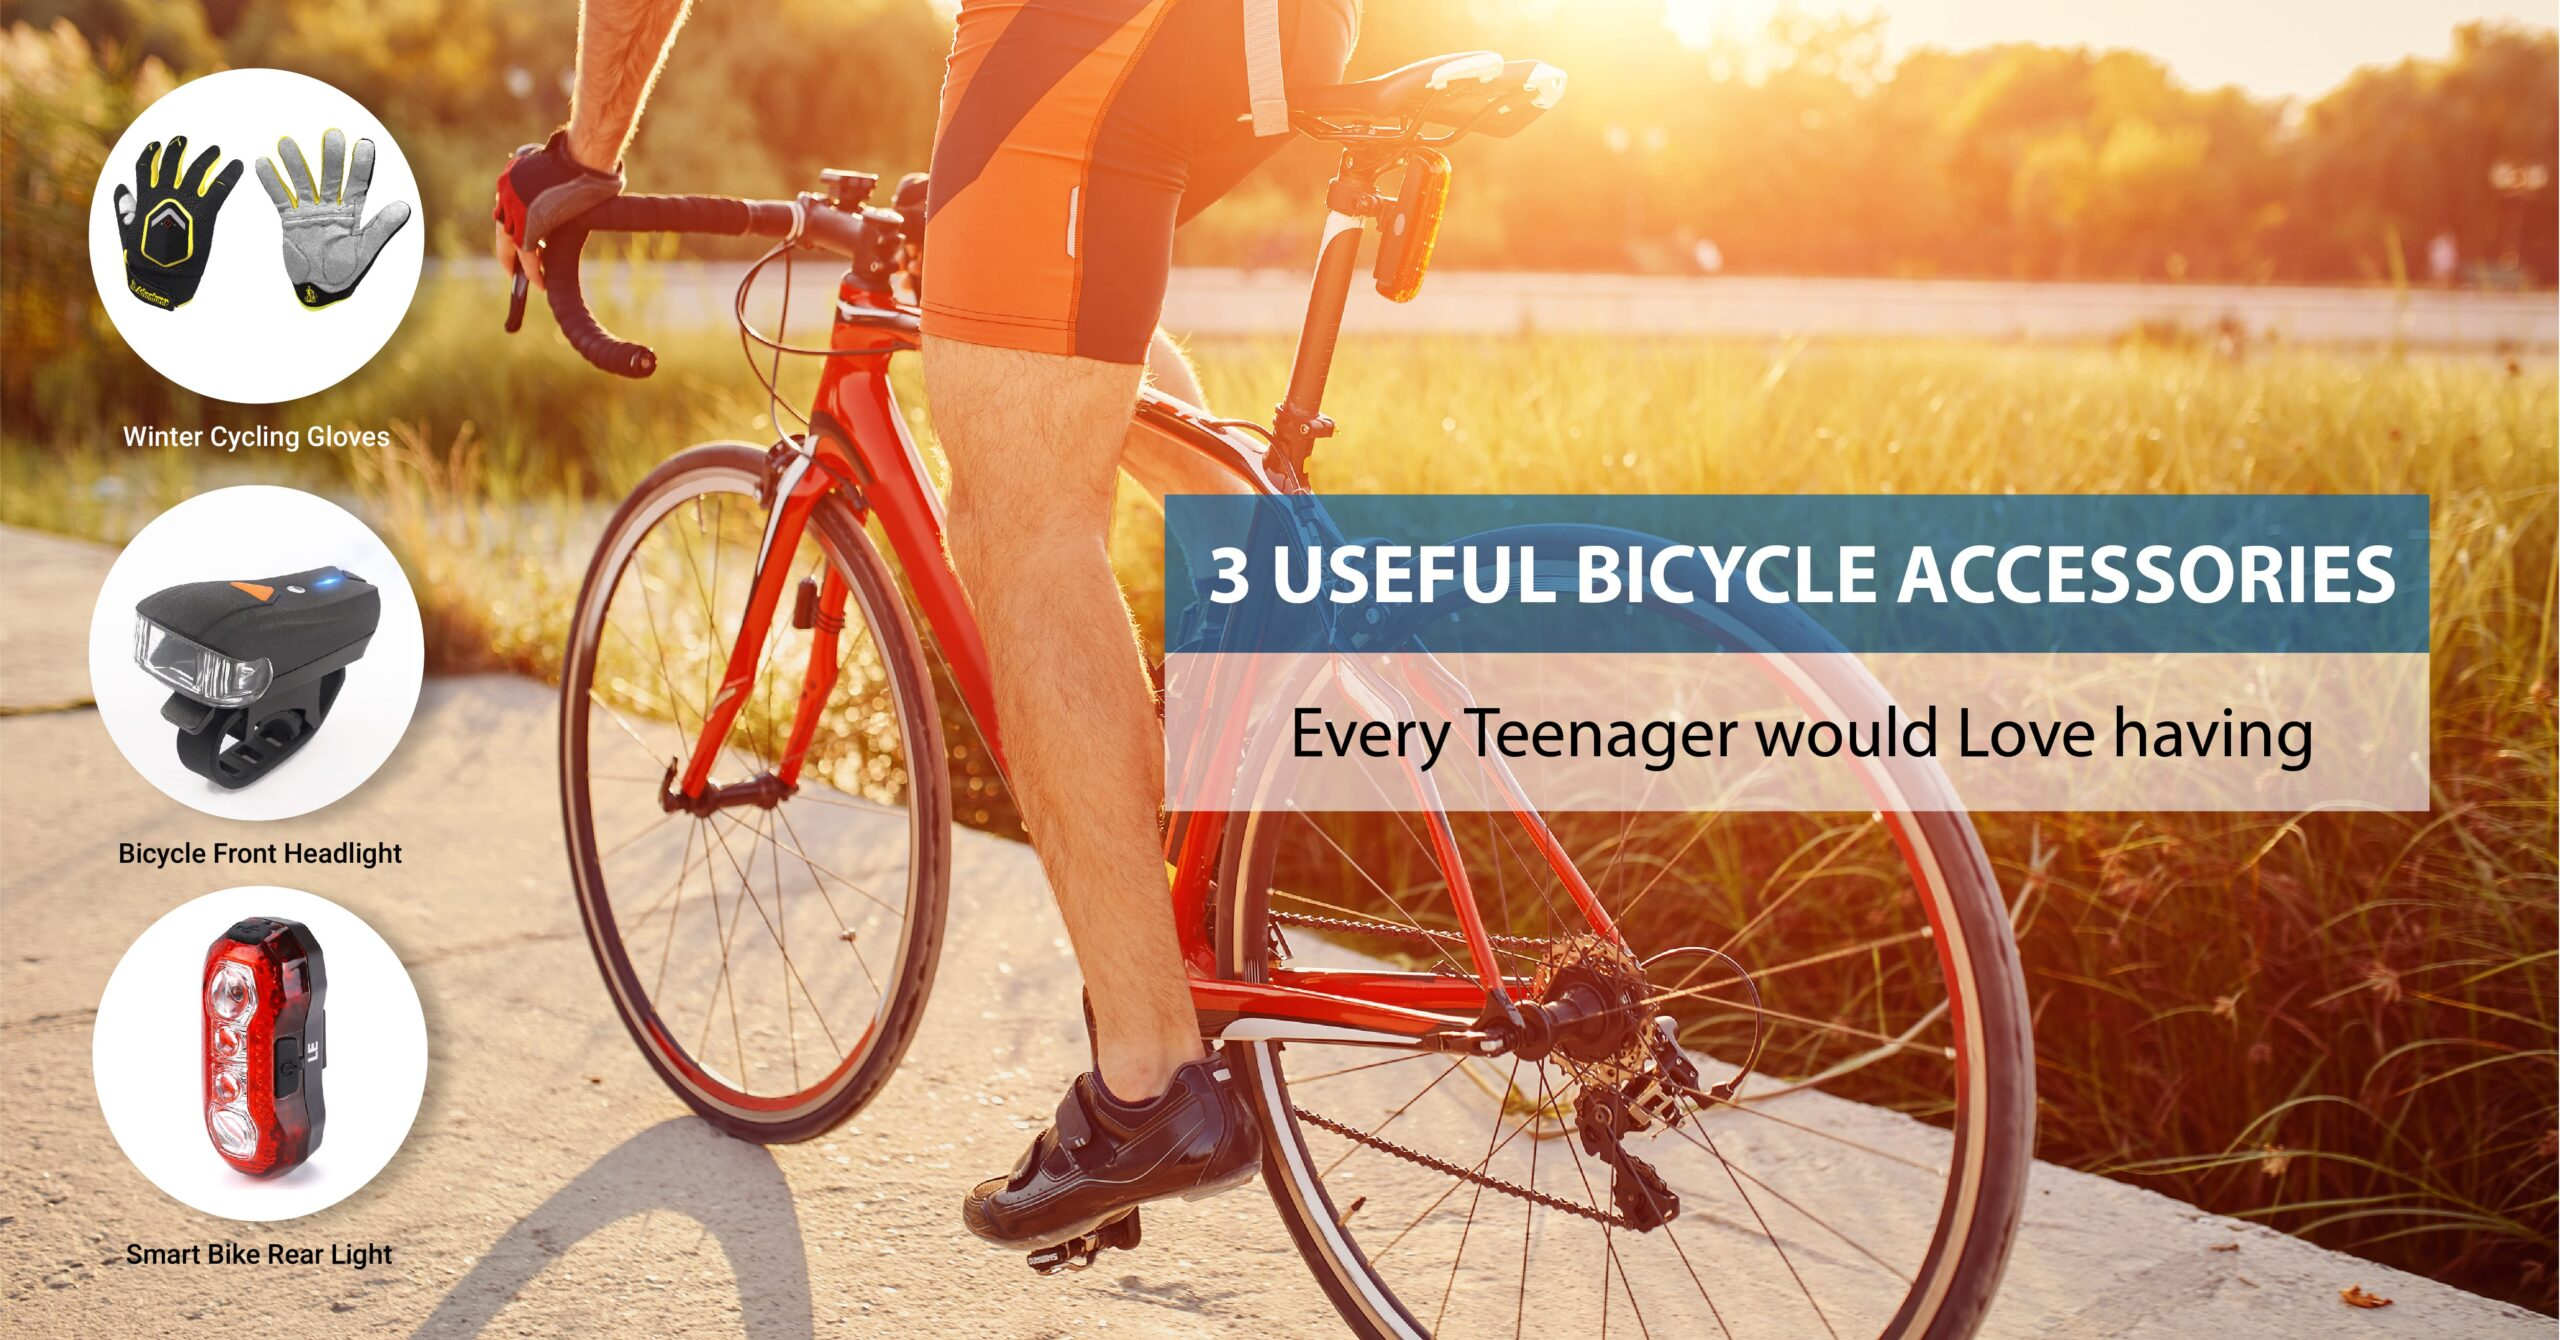 3 USEFUL BICYCLE ACCESSORIES EVERY TEENAGER WOULD LOVE HAVING